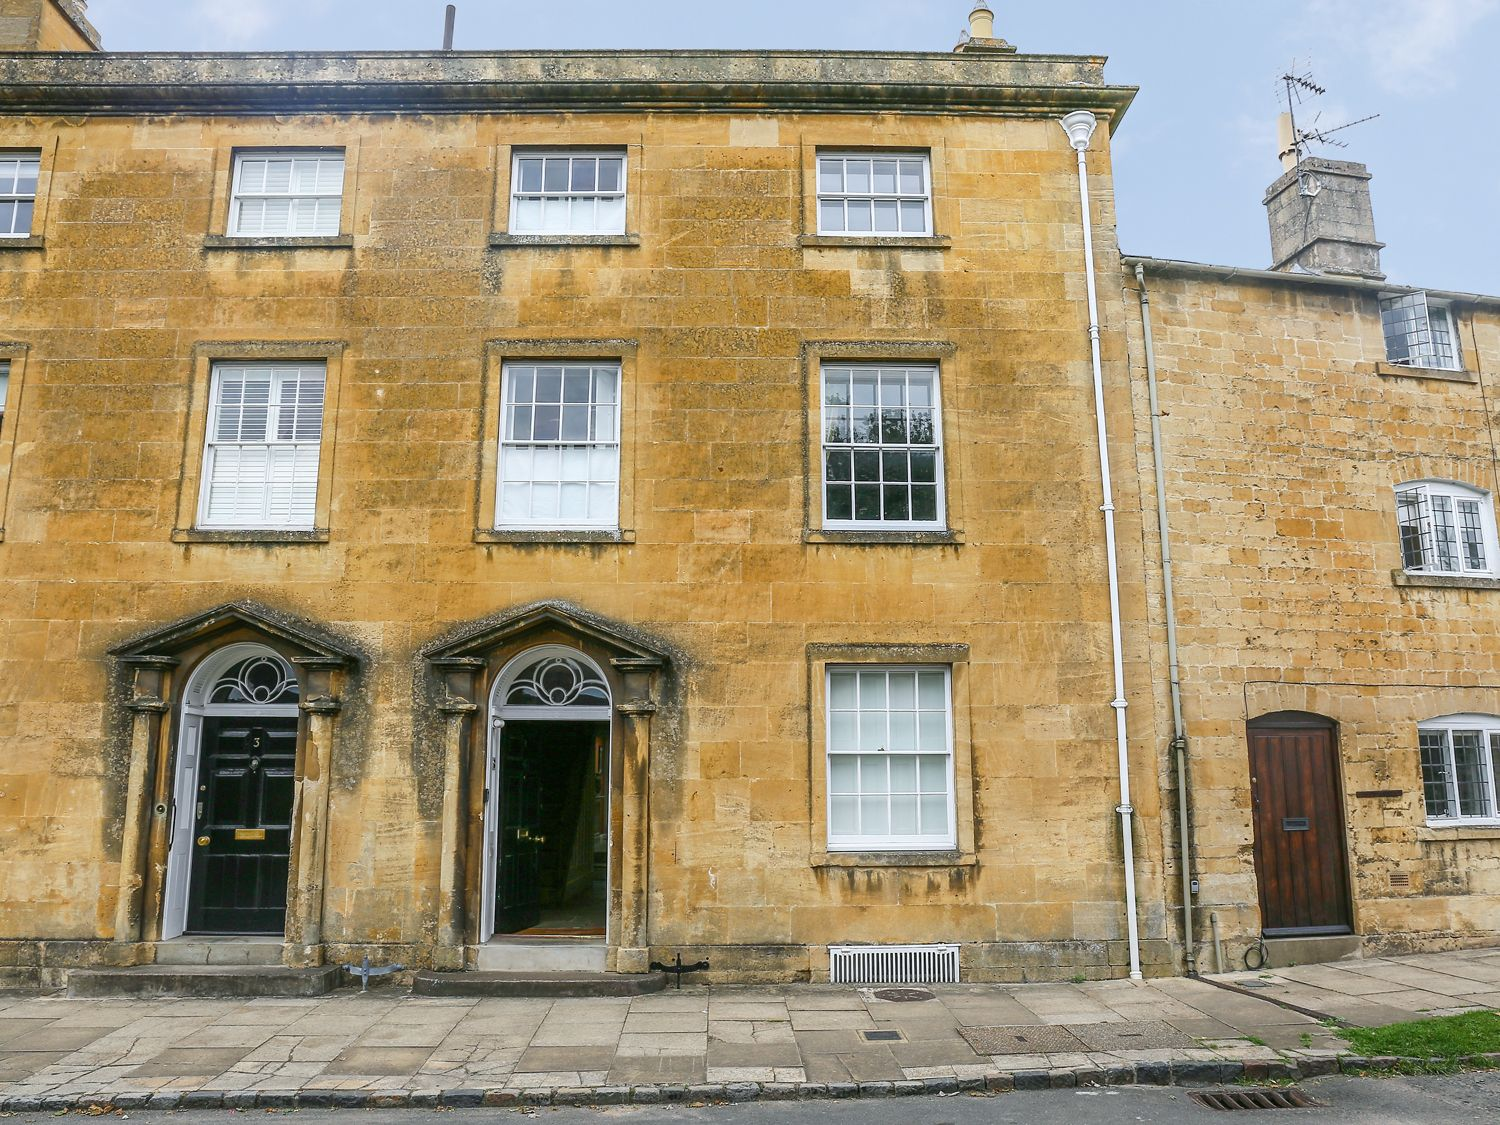 4 Maidens Row - Cotswolds - 1012523 - photo 1